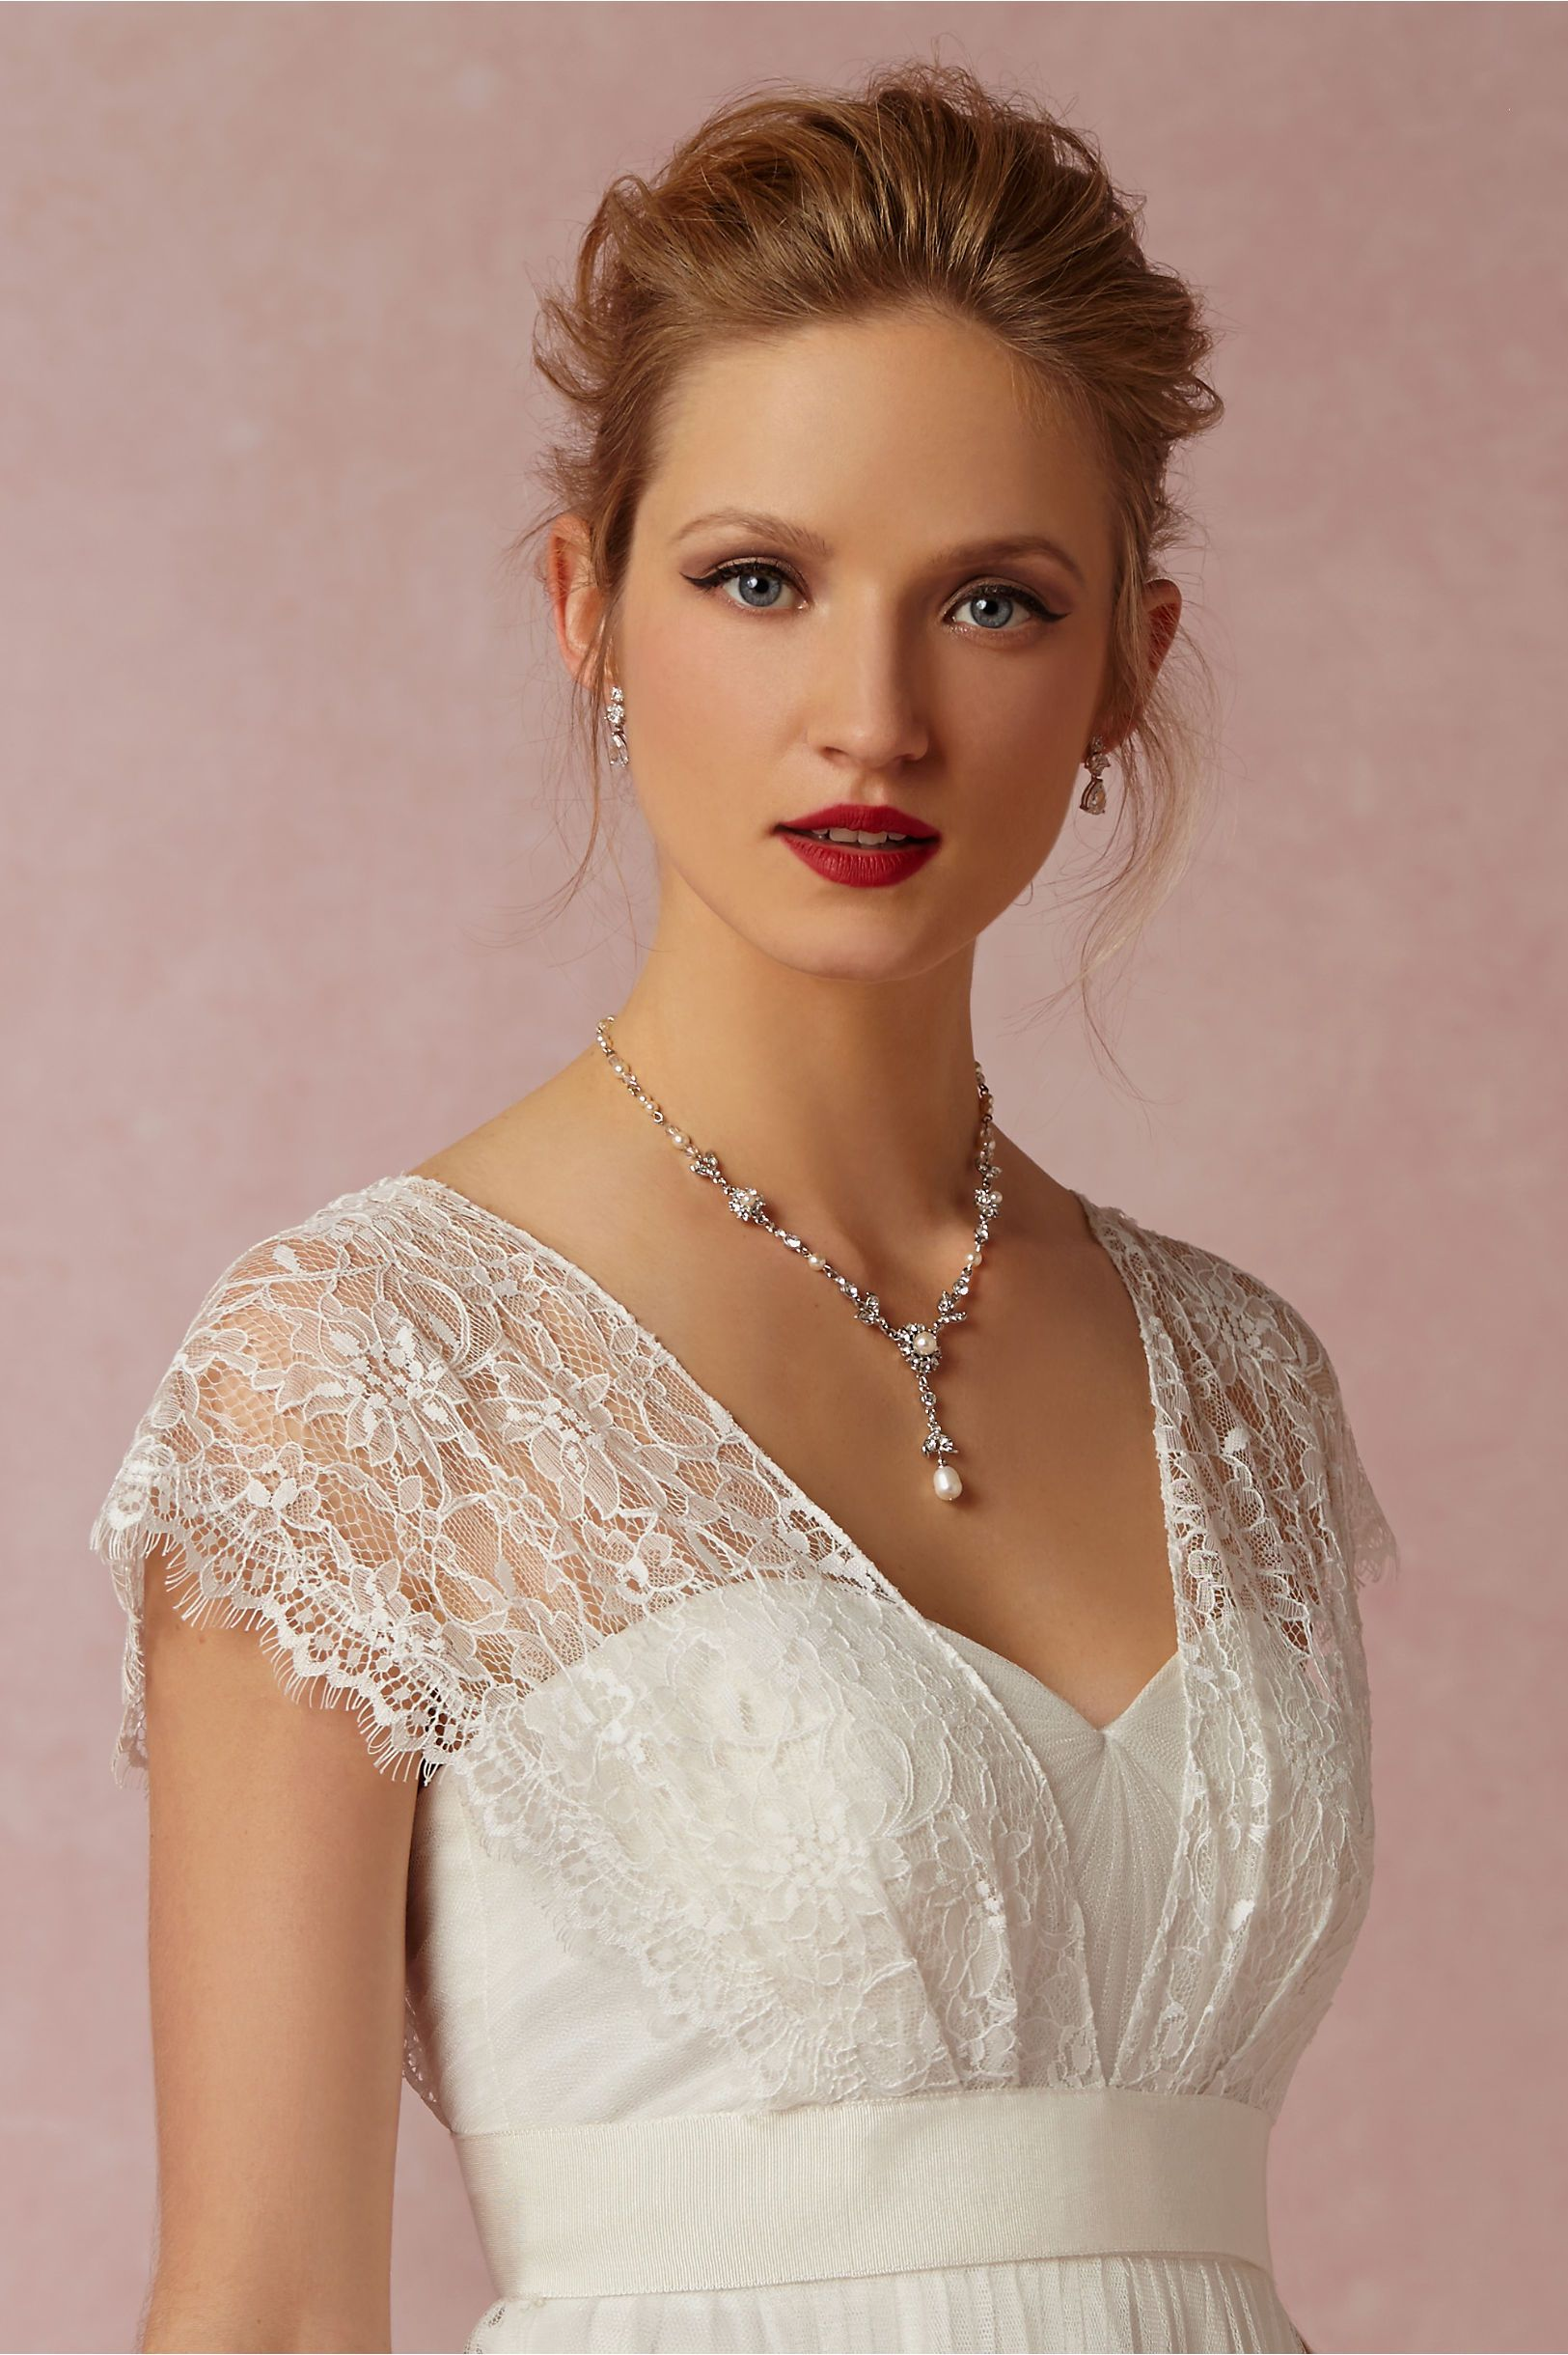 Iris Topper to go with Annabelle Dress in Bride Wedding Dresses at ...